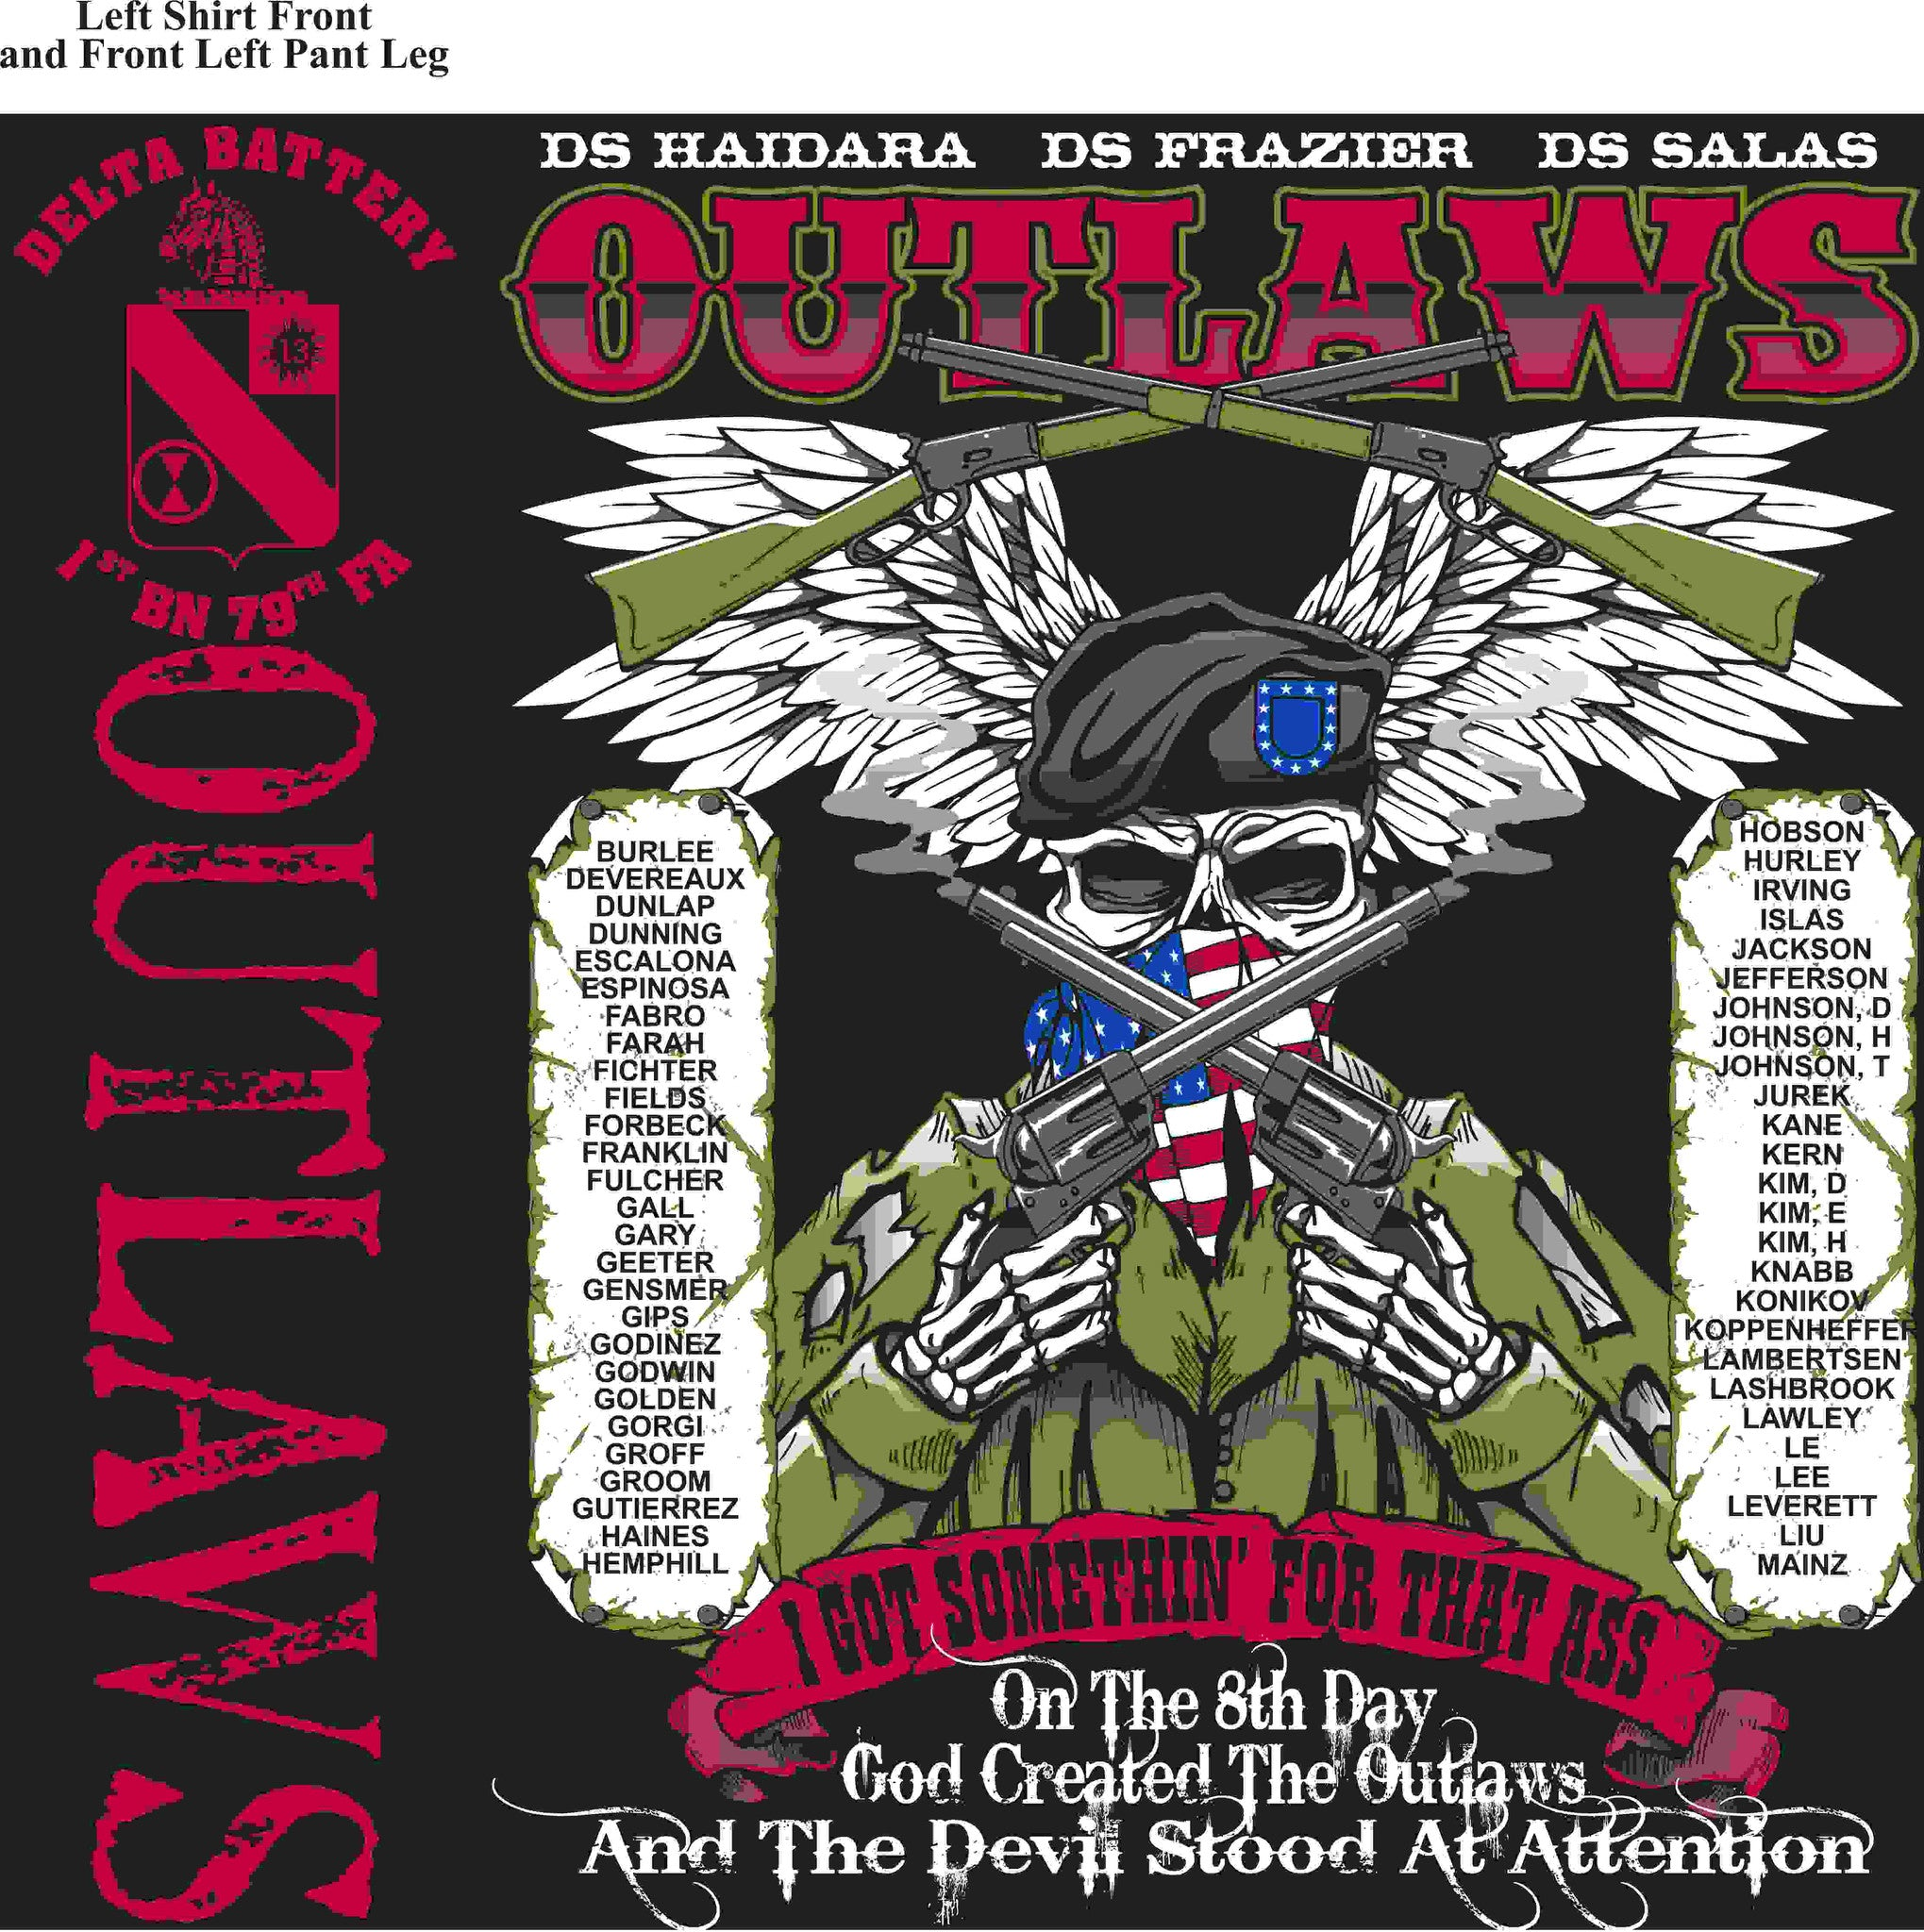 PLATOON SHIRTS (2nd generation print) DELTA 1st 79th OUTLAWS APR 2016